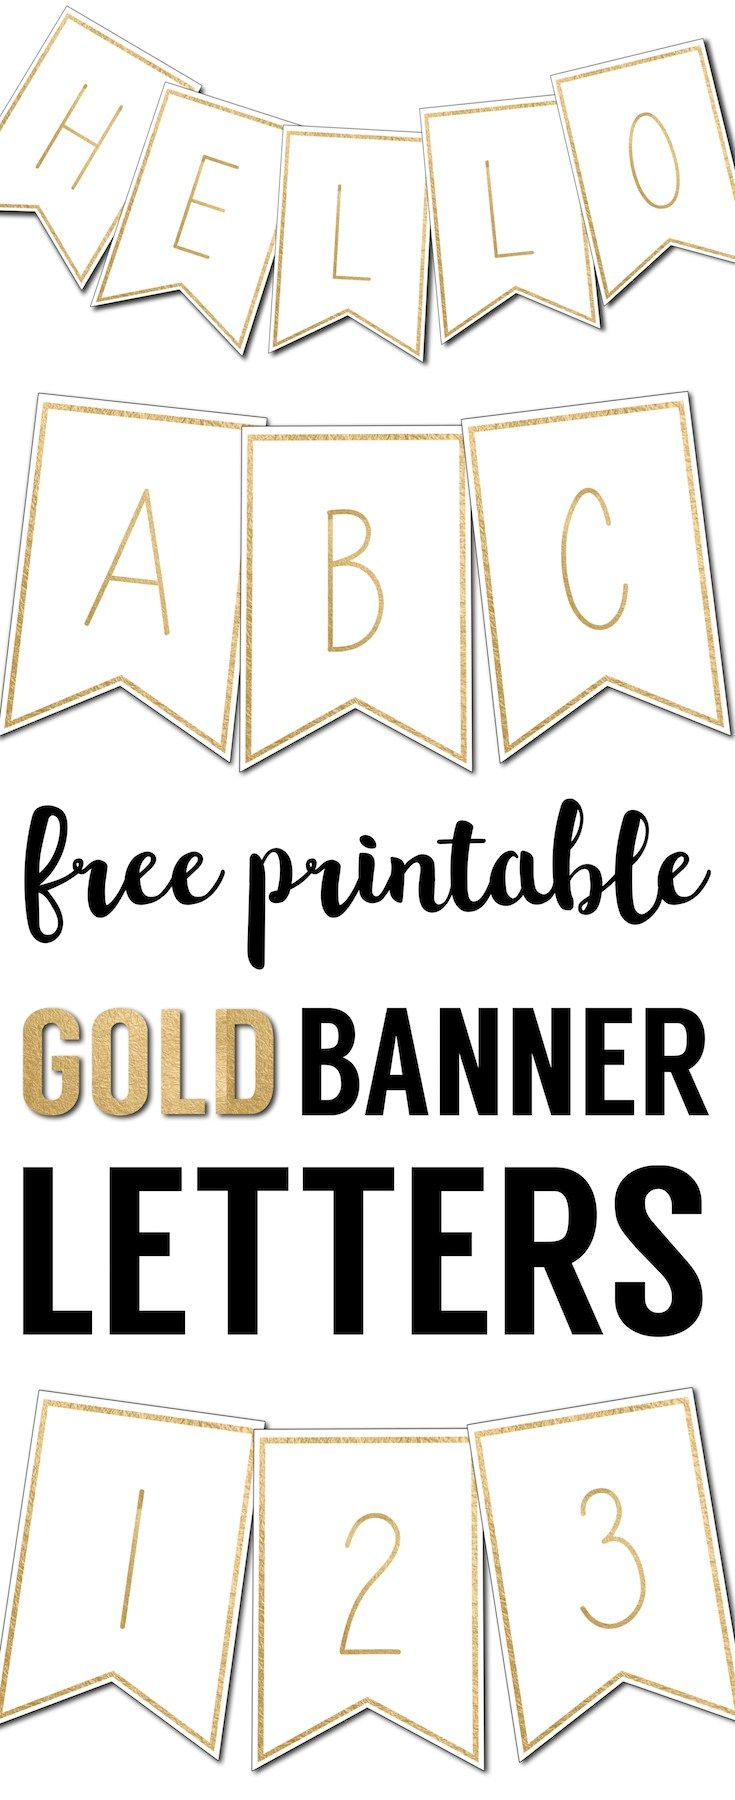 Free Printable Banner Letters Templates | The Wedding Stuff - Free Printable Wedding Banner Letters